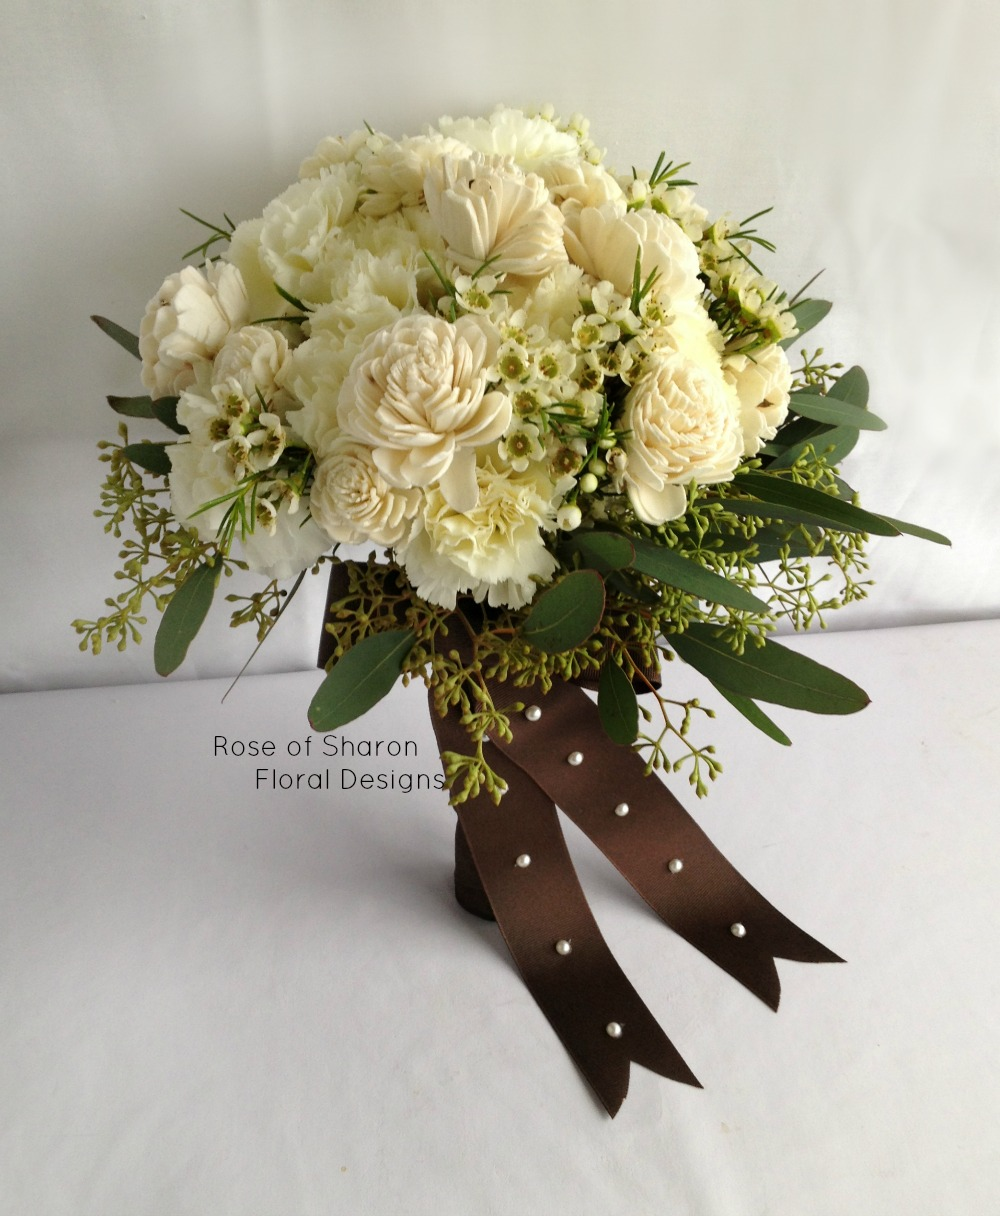 Hand-Tied Bouquet. Carnations, Wax Flower and Wood Roses. Rose of Sharon Floral Designs